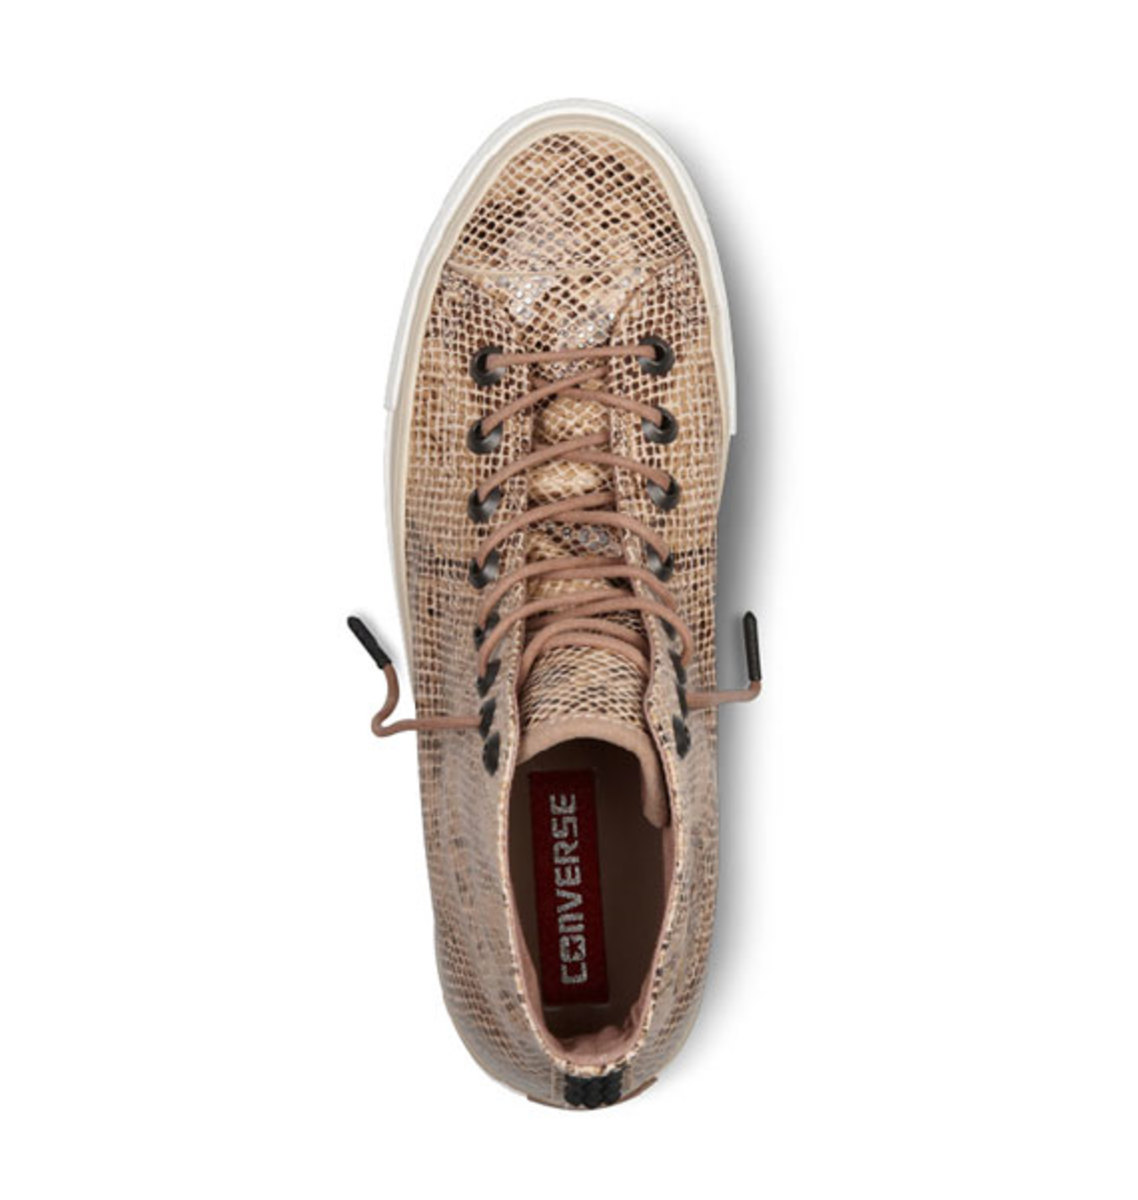 converse-chuck-taylor-all-star-year-of-the-snake-pack-05